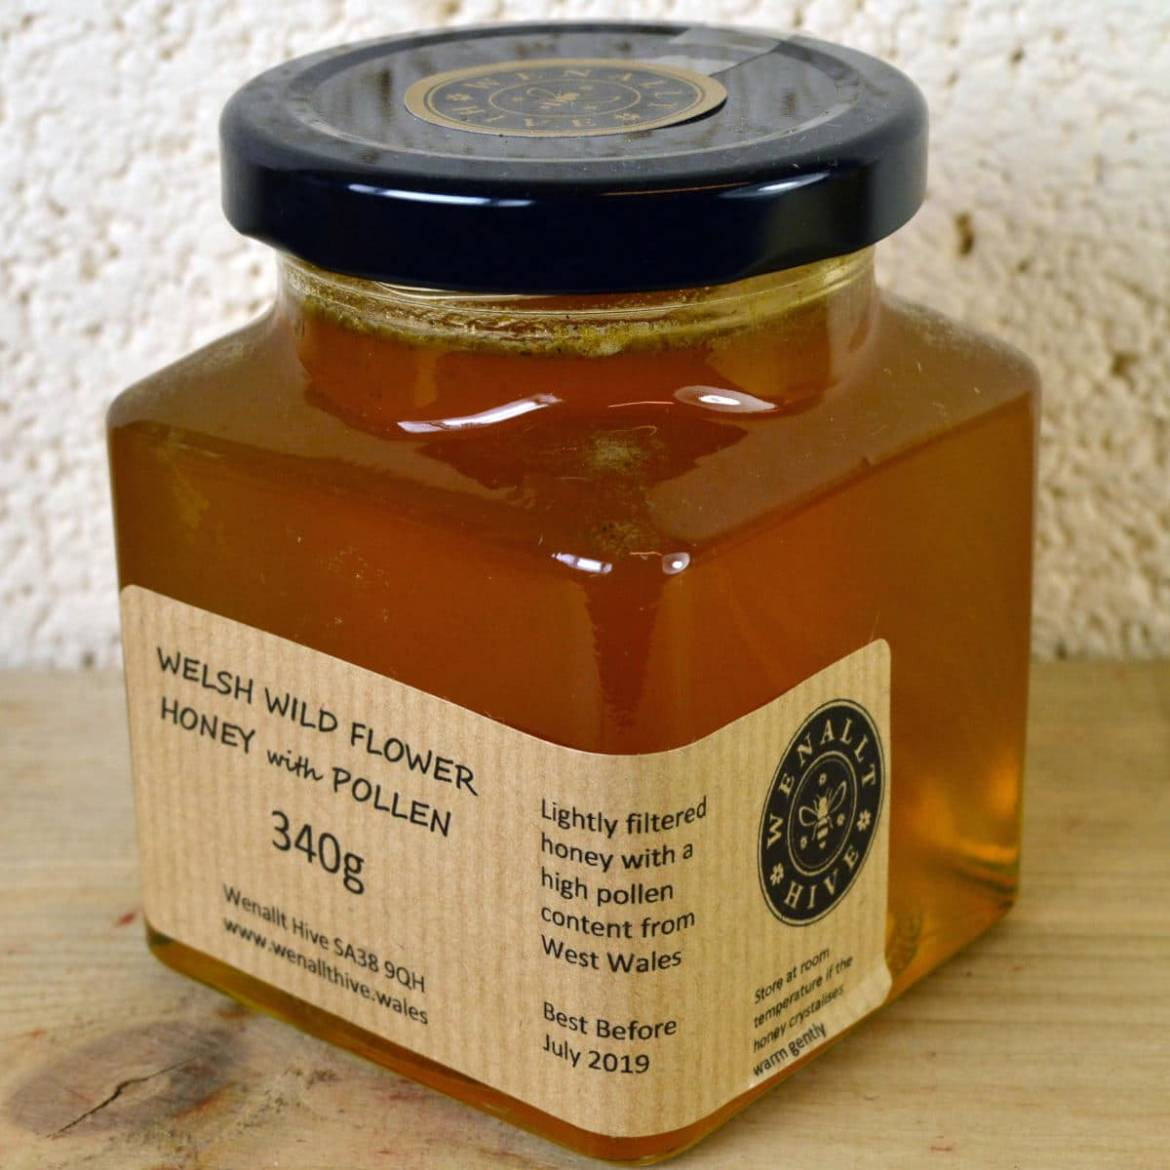 welsh_wild_flower_honey_with_pollen_side.jpg